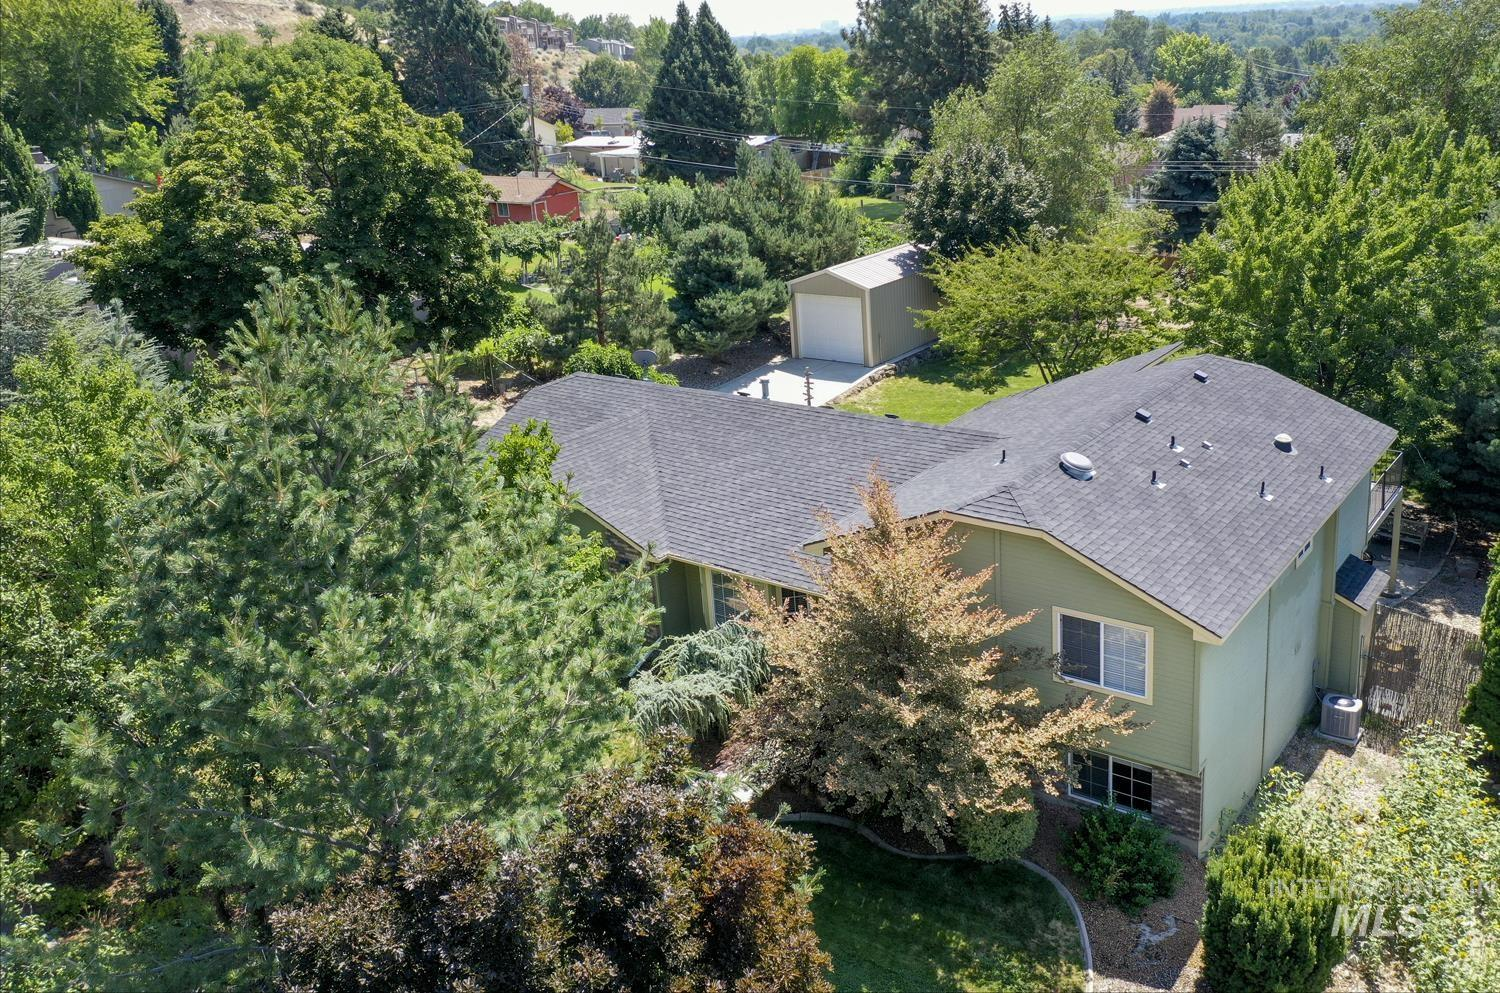 4913 W Outlook Ave Property Photo 1